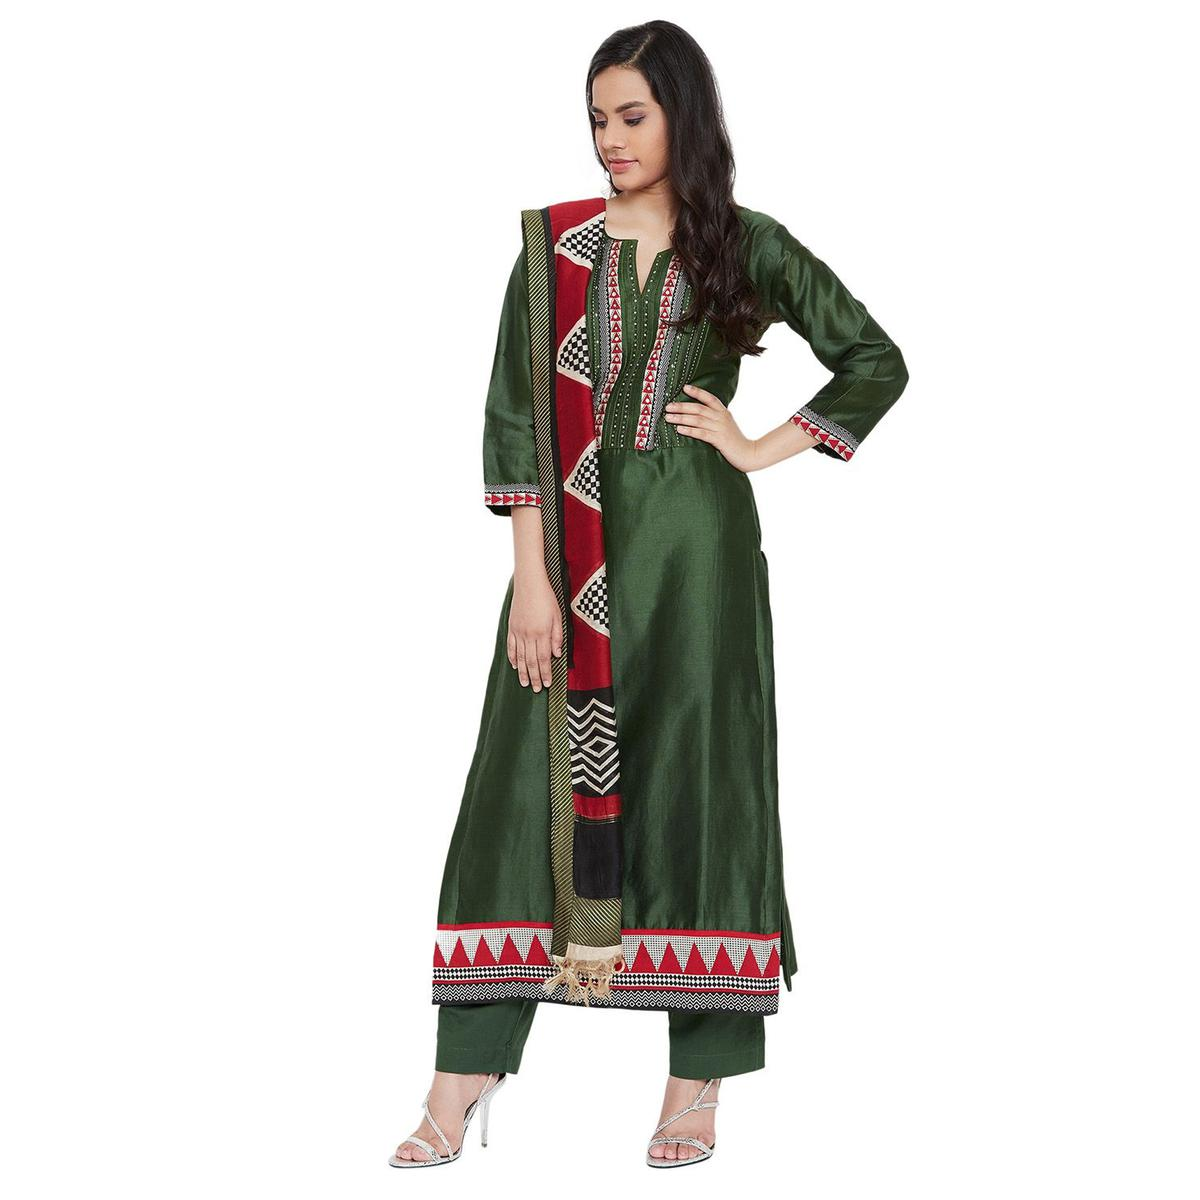 Vastrangana Delightful Green Colored Party Wear Embroiered Naayaab Silk-Cambric Cotton Dress Material